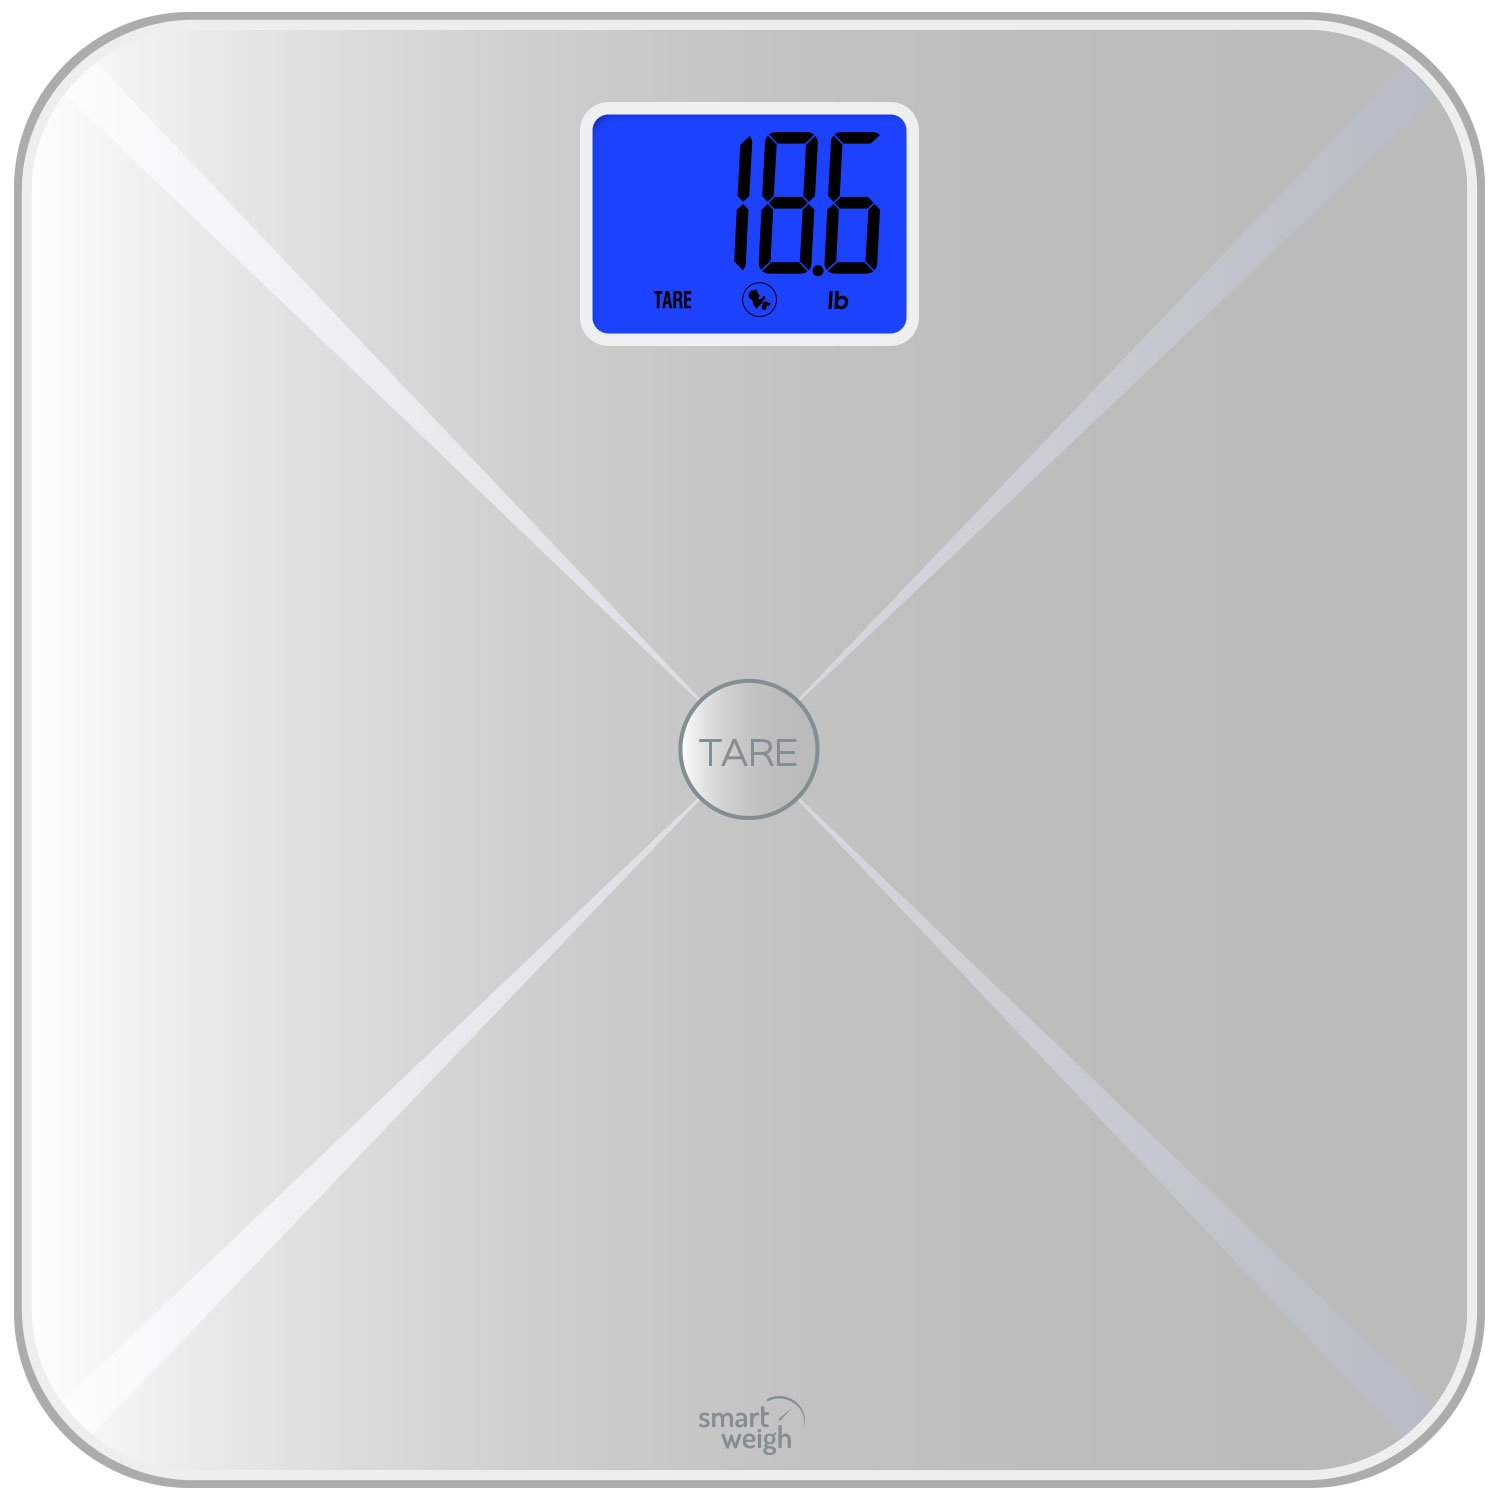 Amazon scale bathroom - Amazon Com Smart Weigh Smart Tare Digital Body Weight Bathroom Scale With Baby Or Pet Tare Weighing Technology Large Lcd Display And Tempered Glass